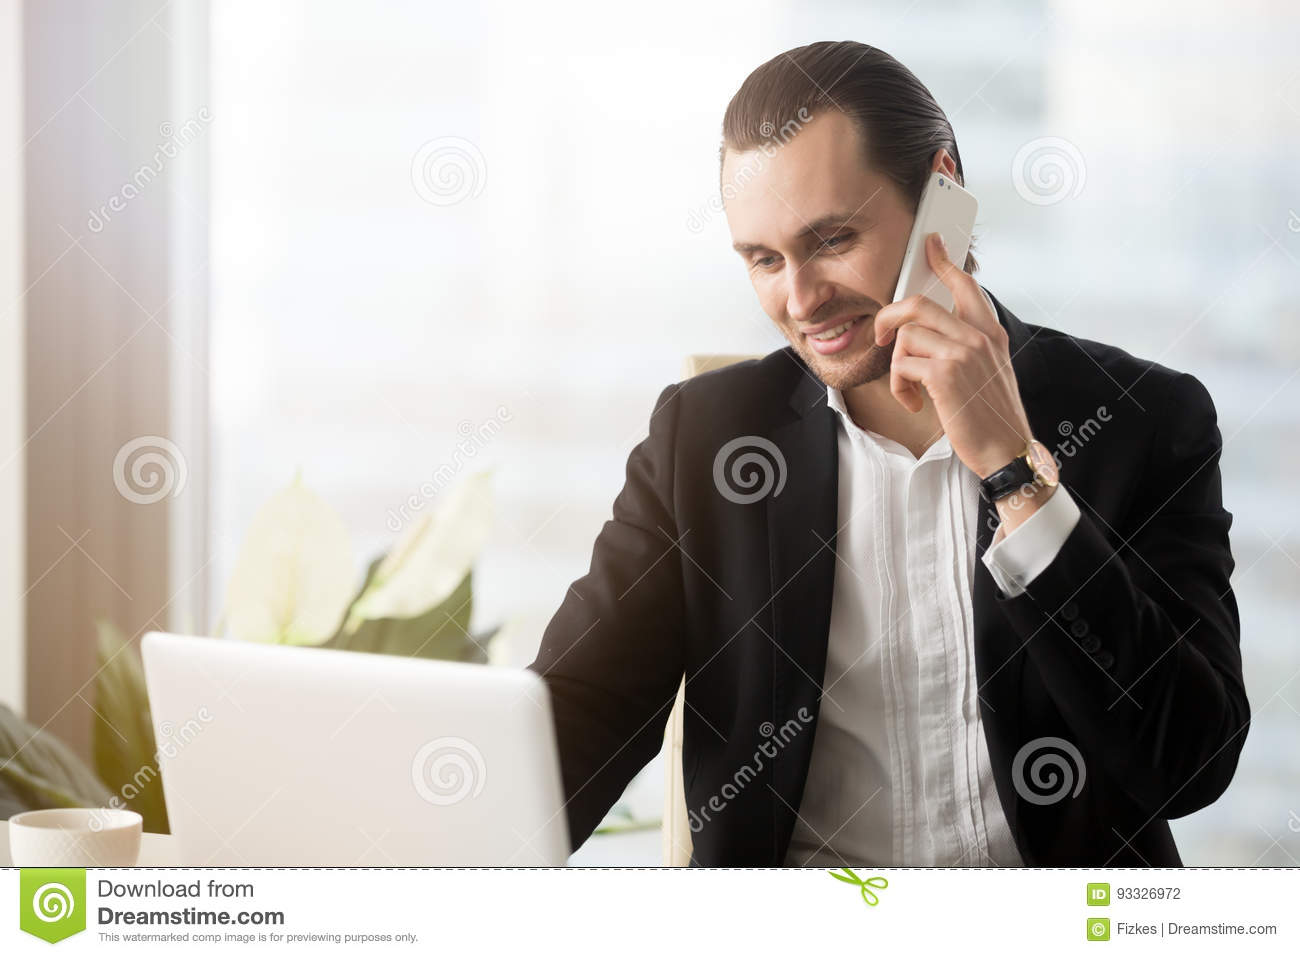 Young Entrepreneur Answers The Call At Workplace Stock Photo - Image